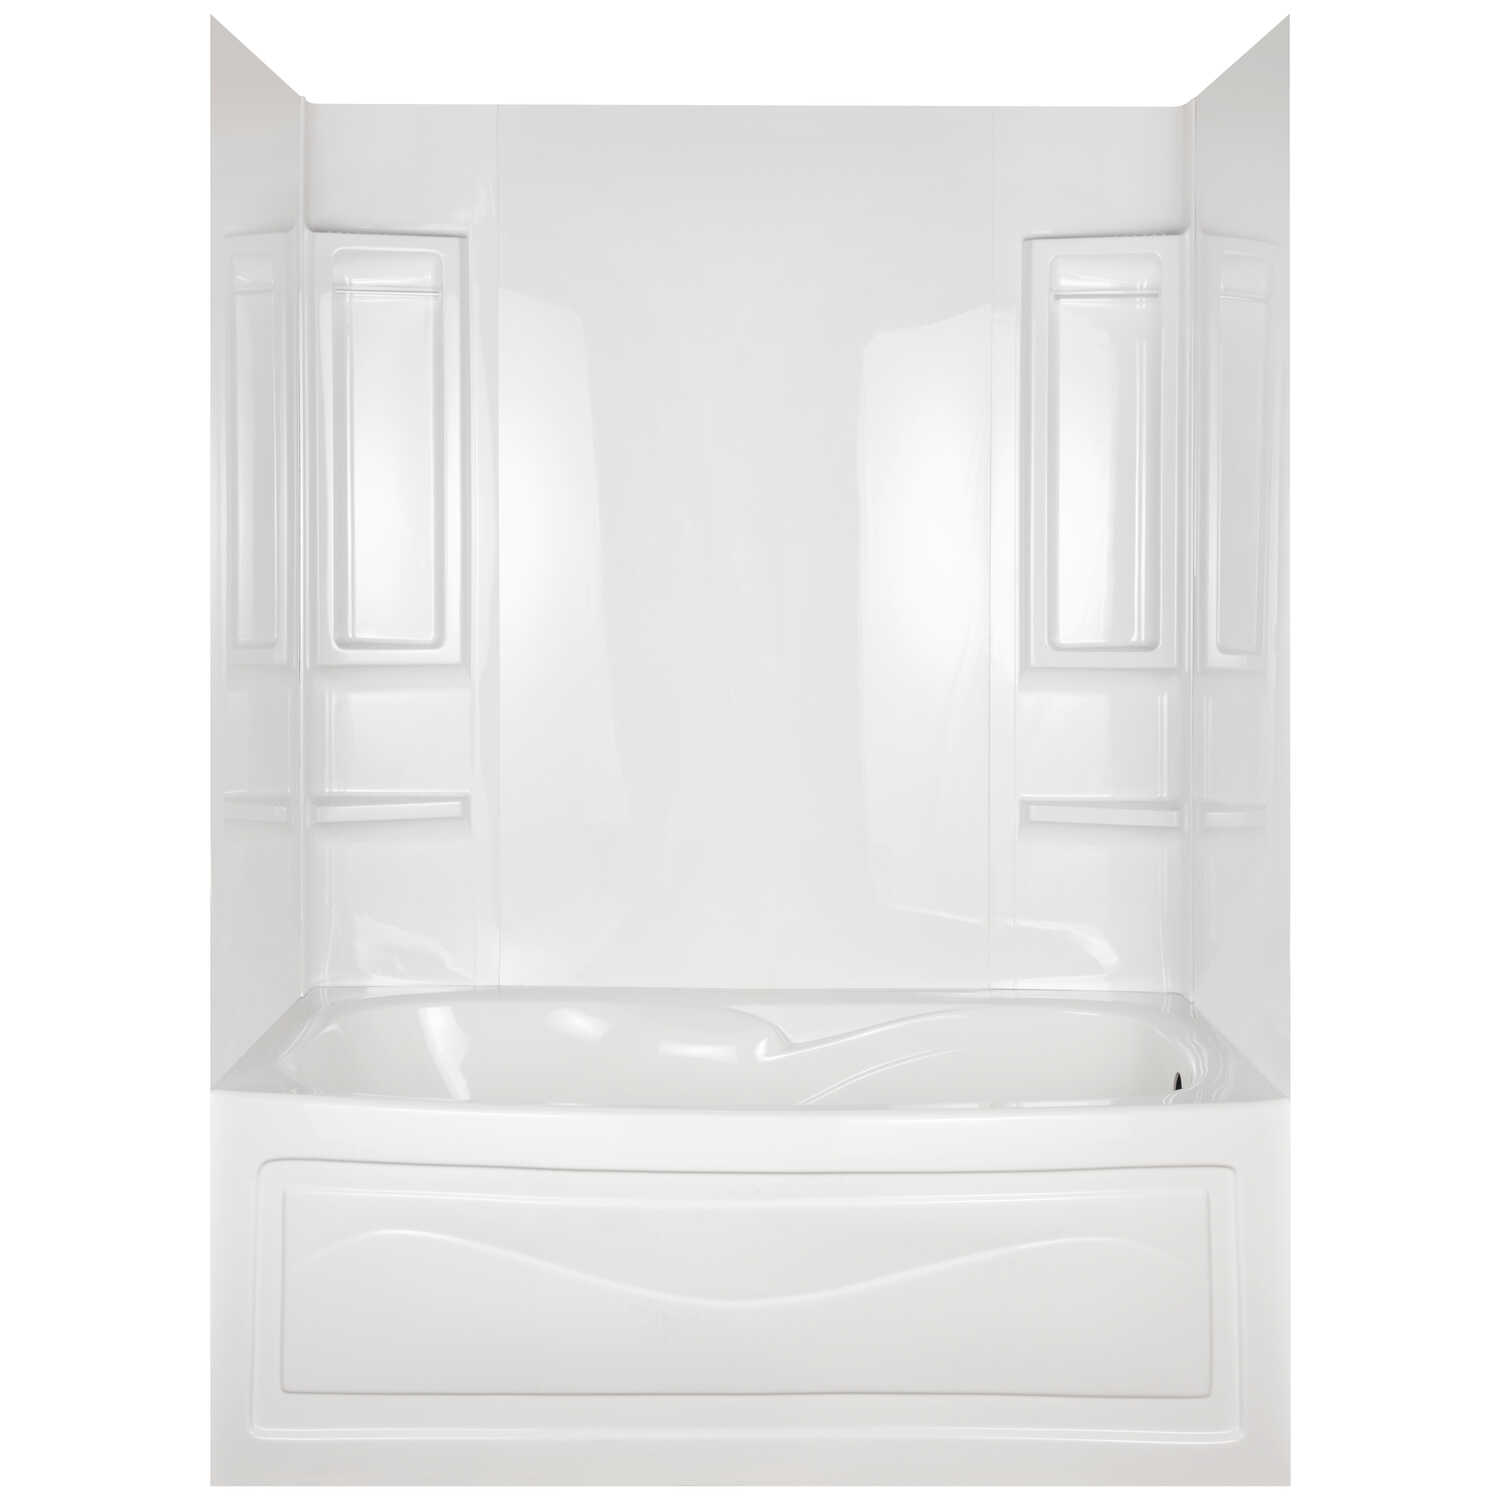 ASB  Vantage  60 in. H x 60 in. W x 27.5 in. L White  Five Piece  Right  Rectangle  Bathtub Wall